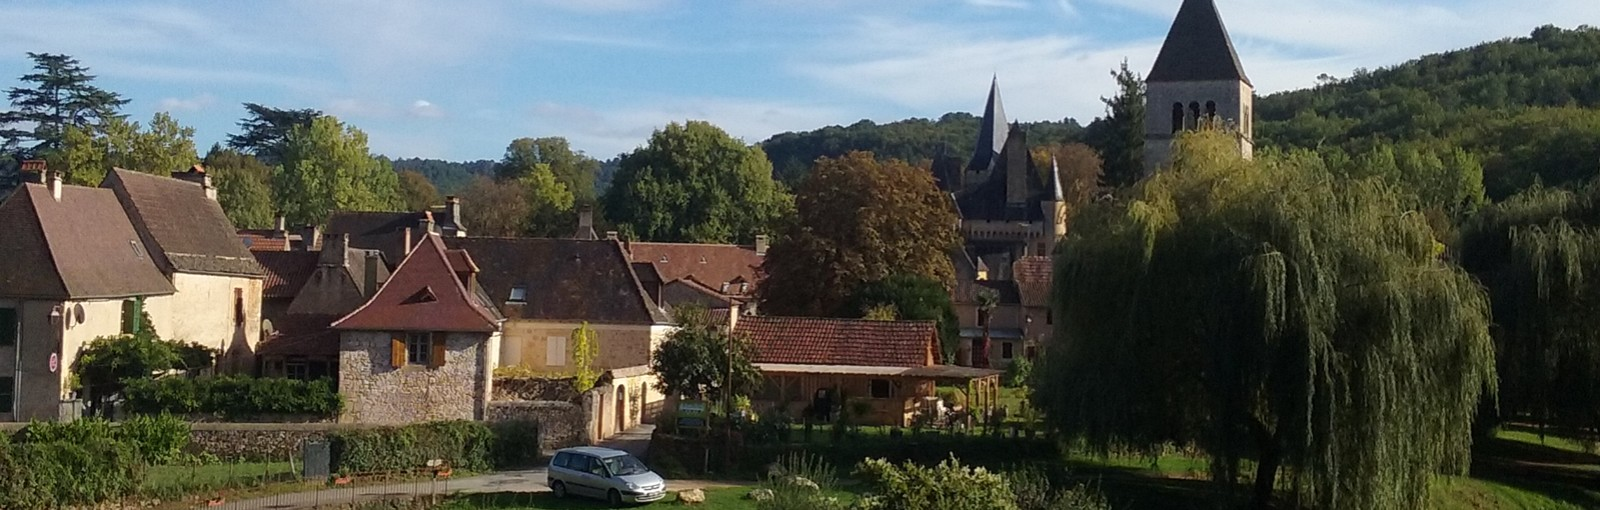 Tours Multi-days tours from Bordeaux or Sarlat - Dordogne & Aquitaine - Regional tours